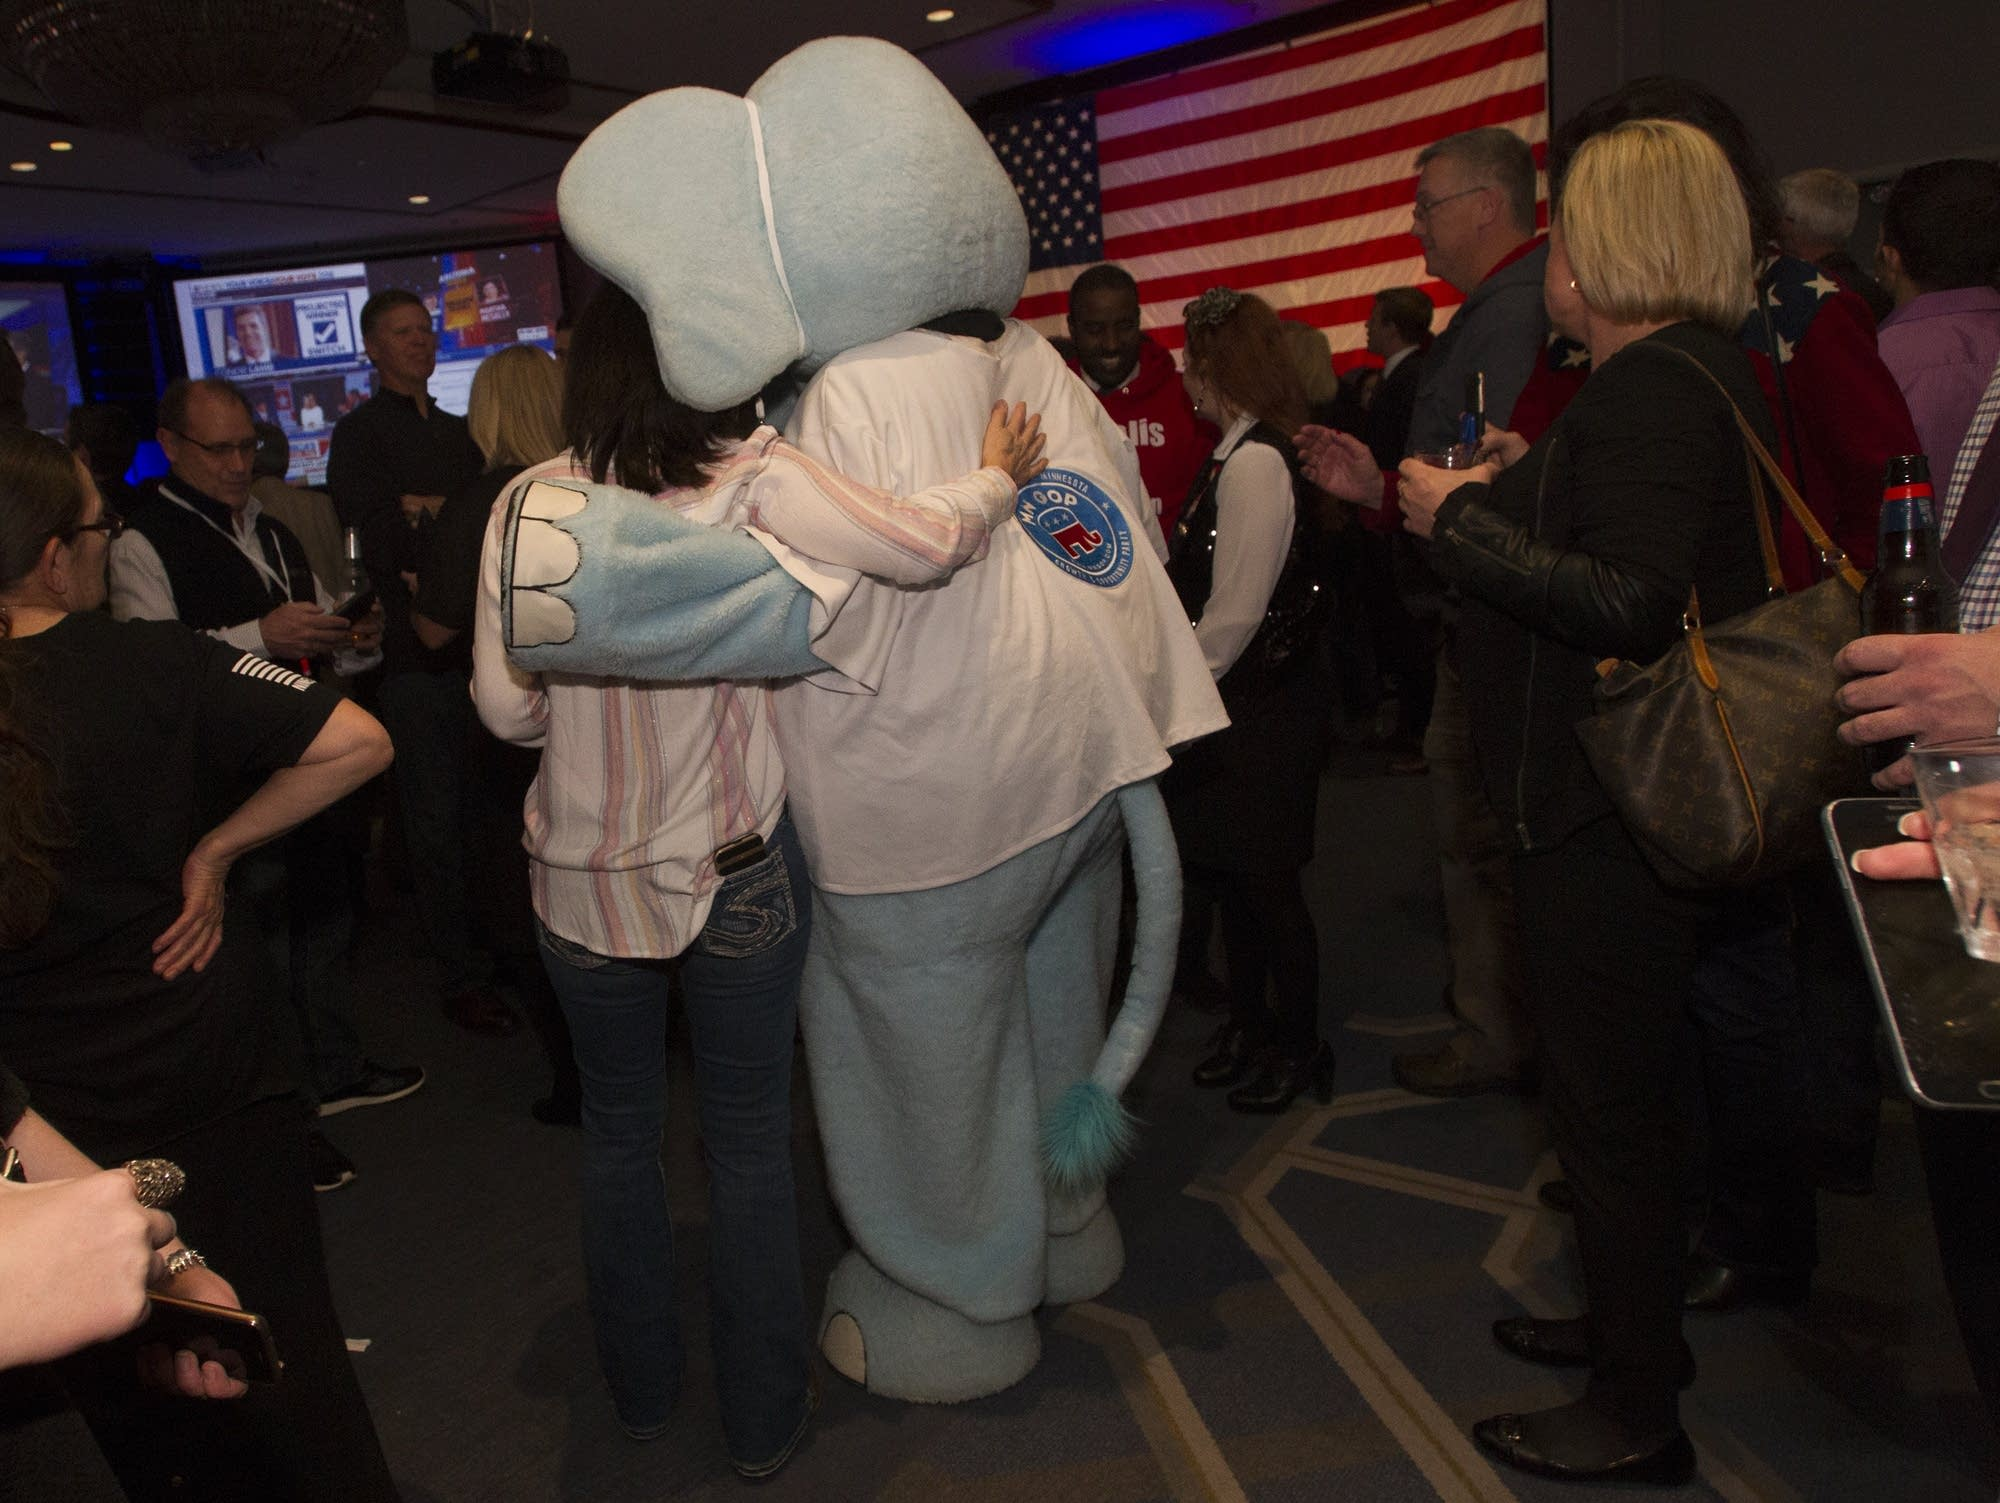 Republicans gather to watch the midterm election results.